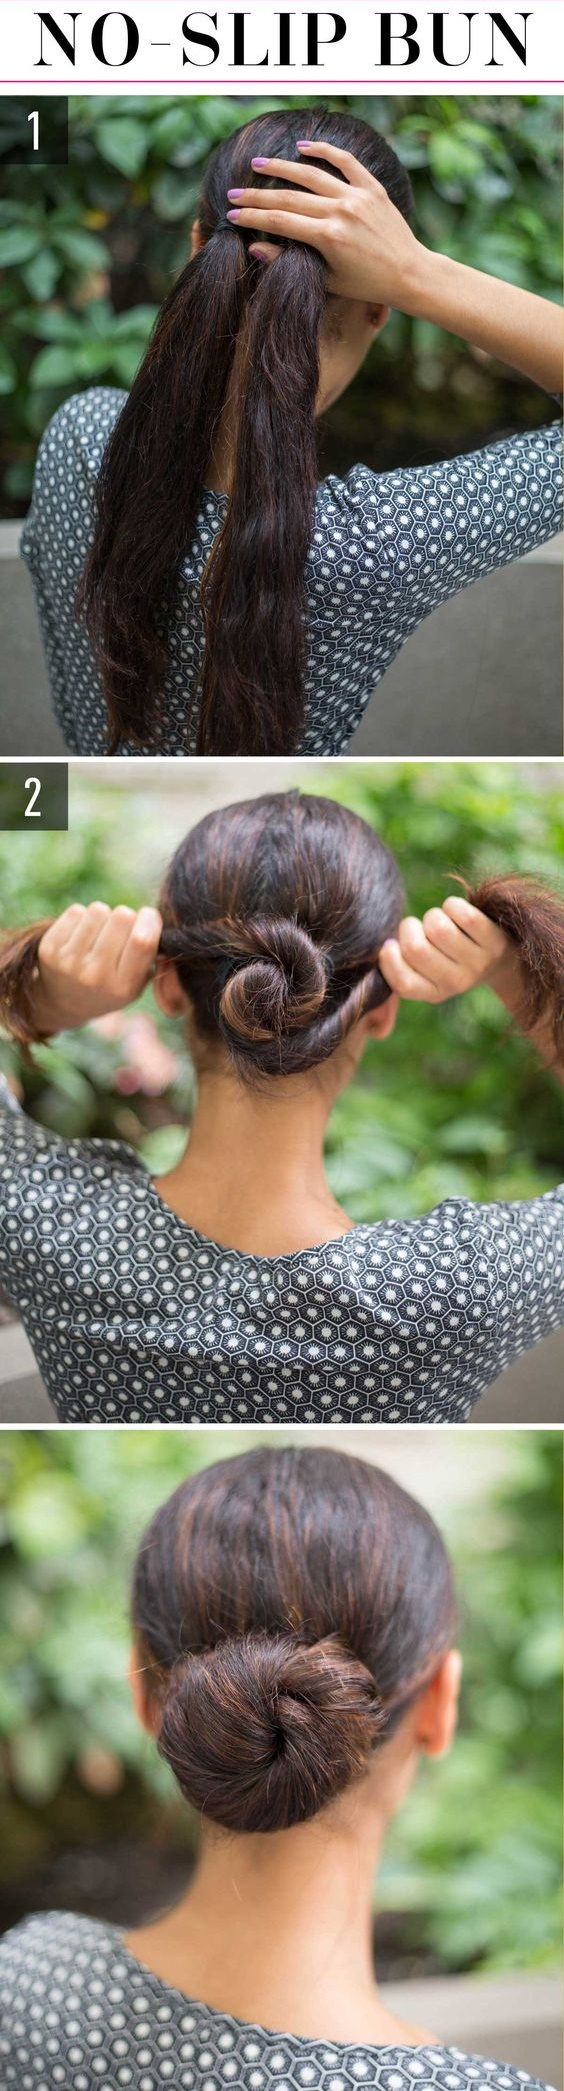 Cute Hairstyles You Will Be Able To Get In 20 Seconds 3